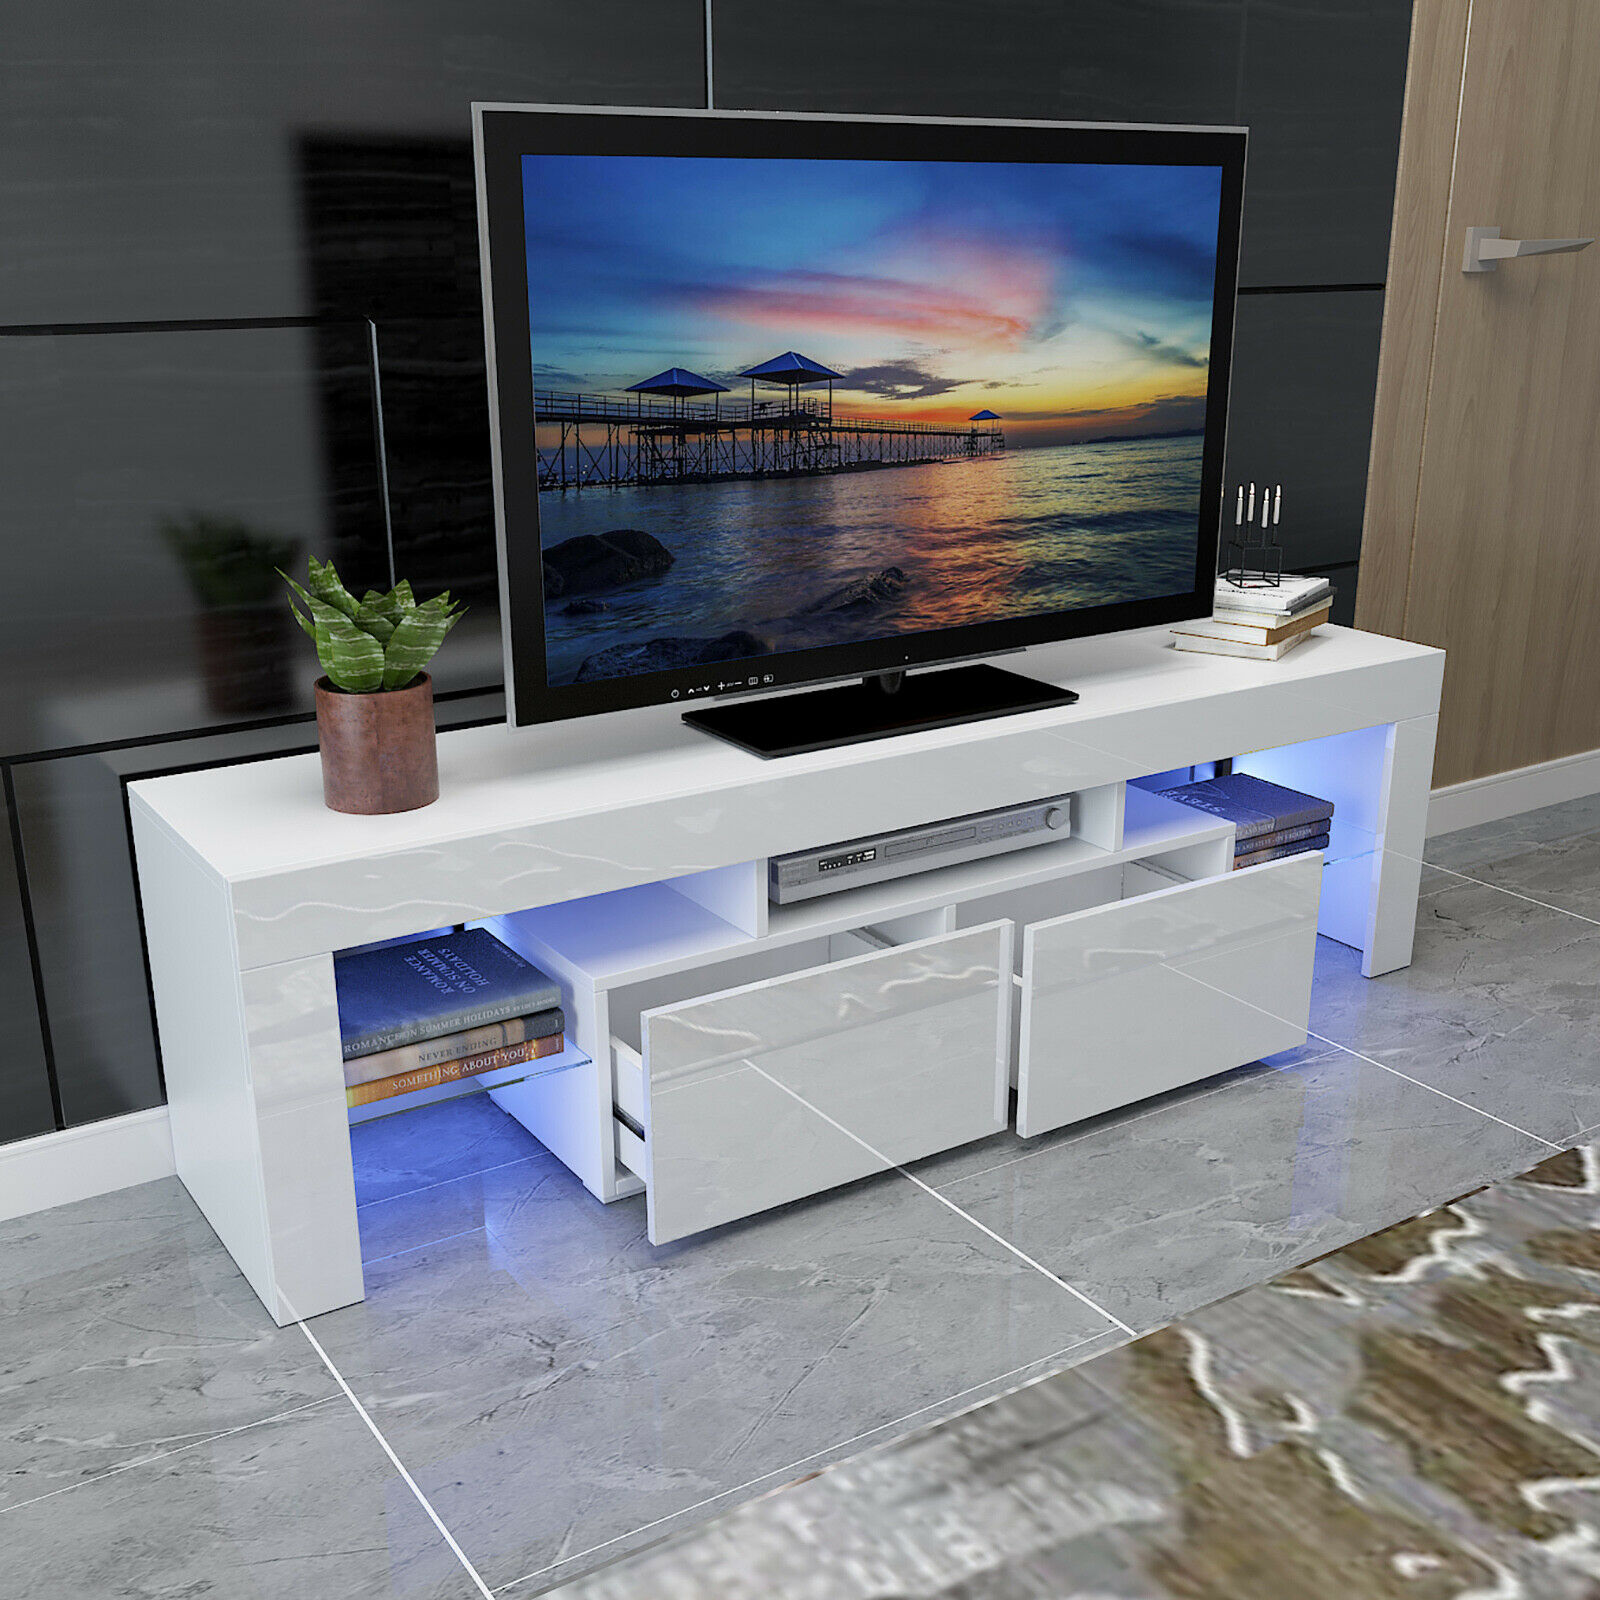 White 63 High Gloss TV Stand Unit Cabinet Console LED Shelve 2 Drawer Furniture. Available Now for 179.99